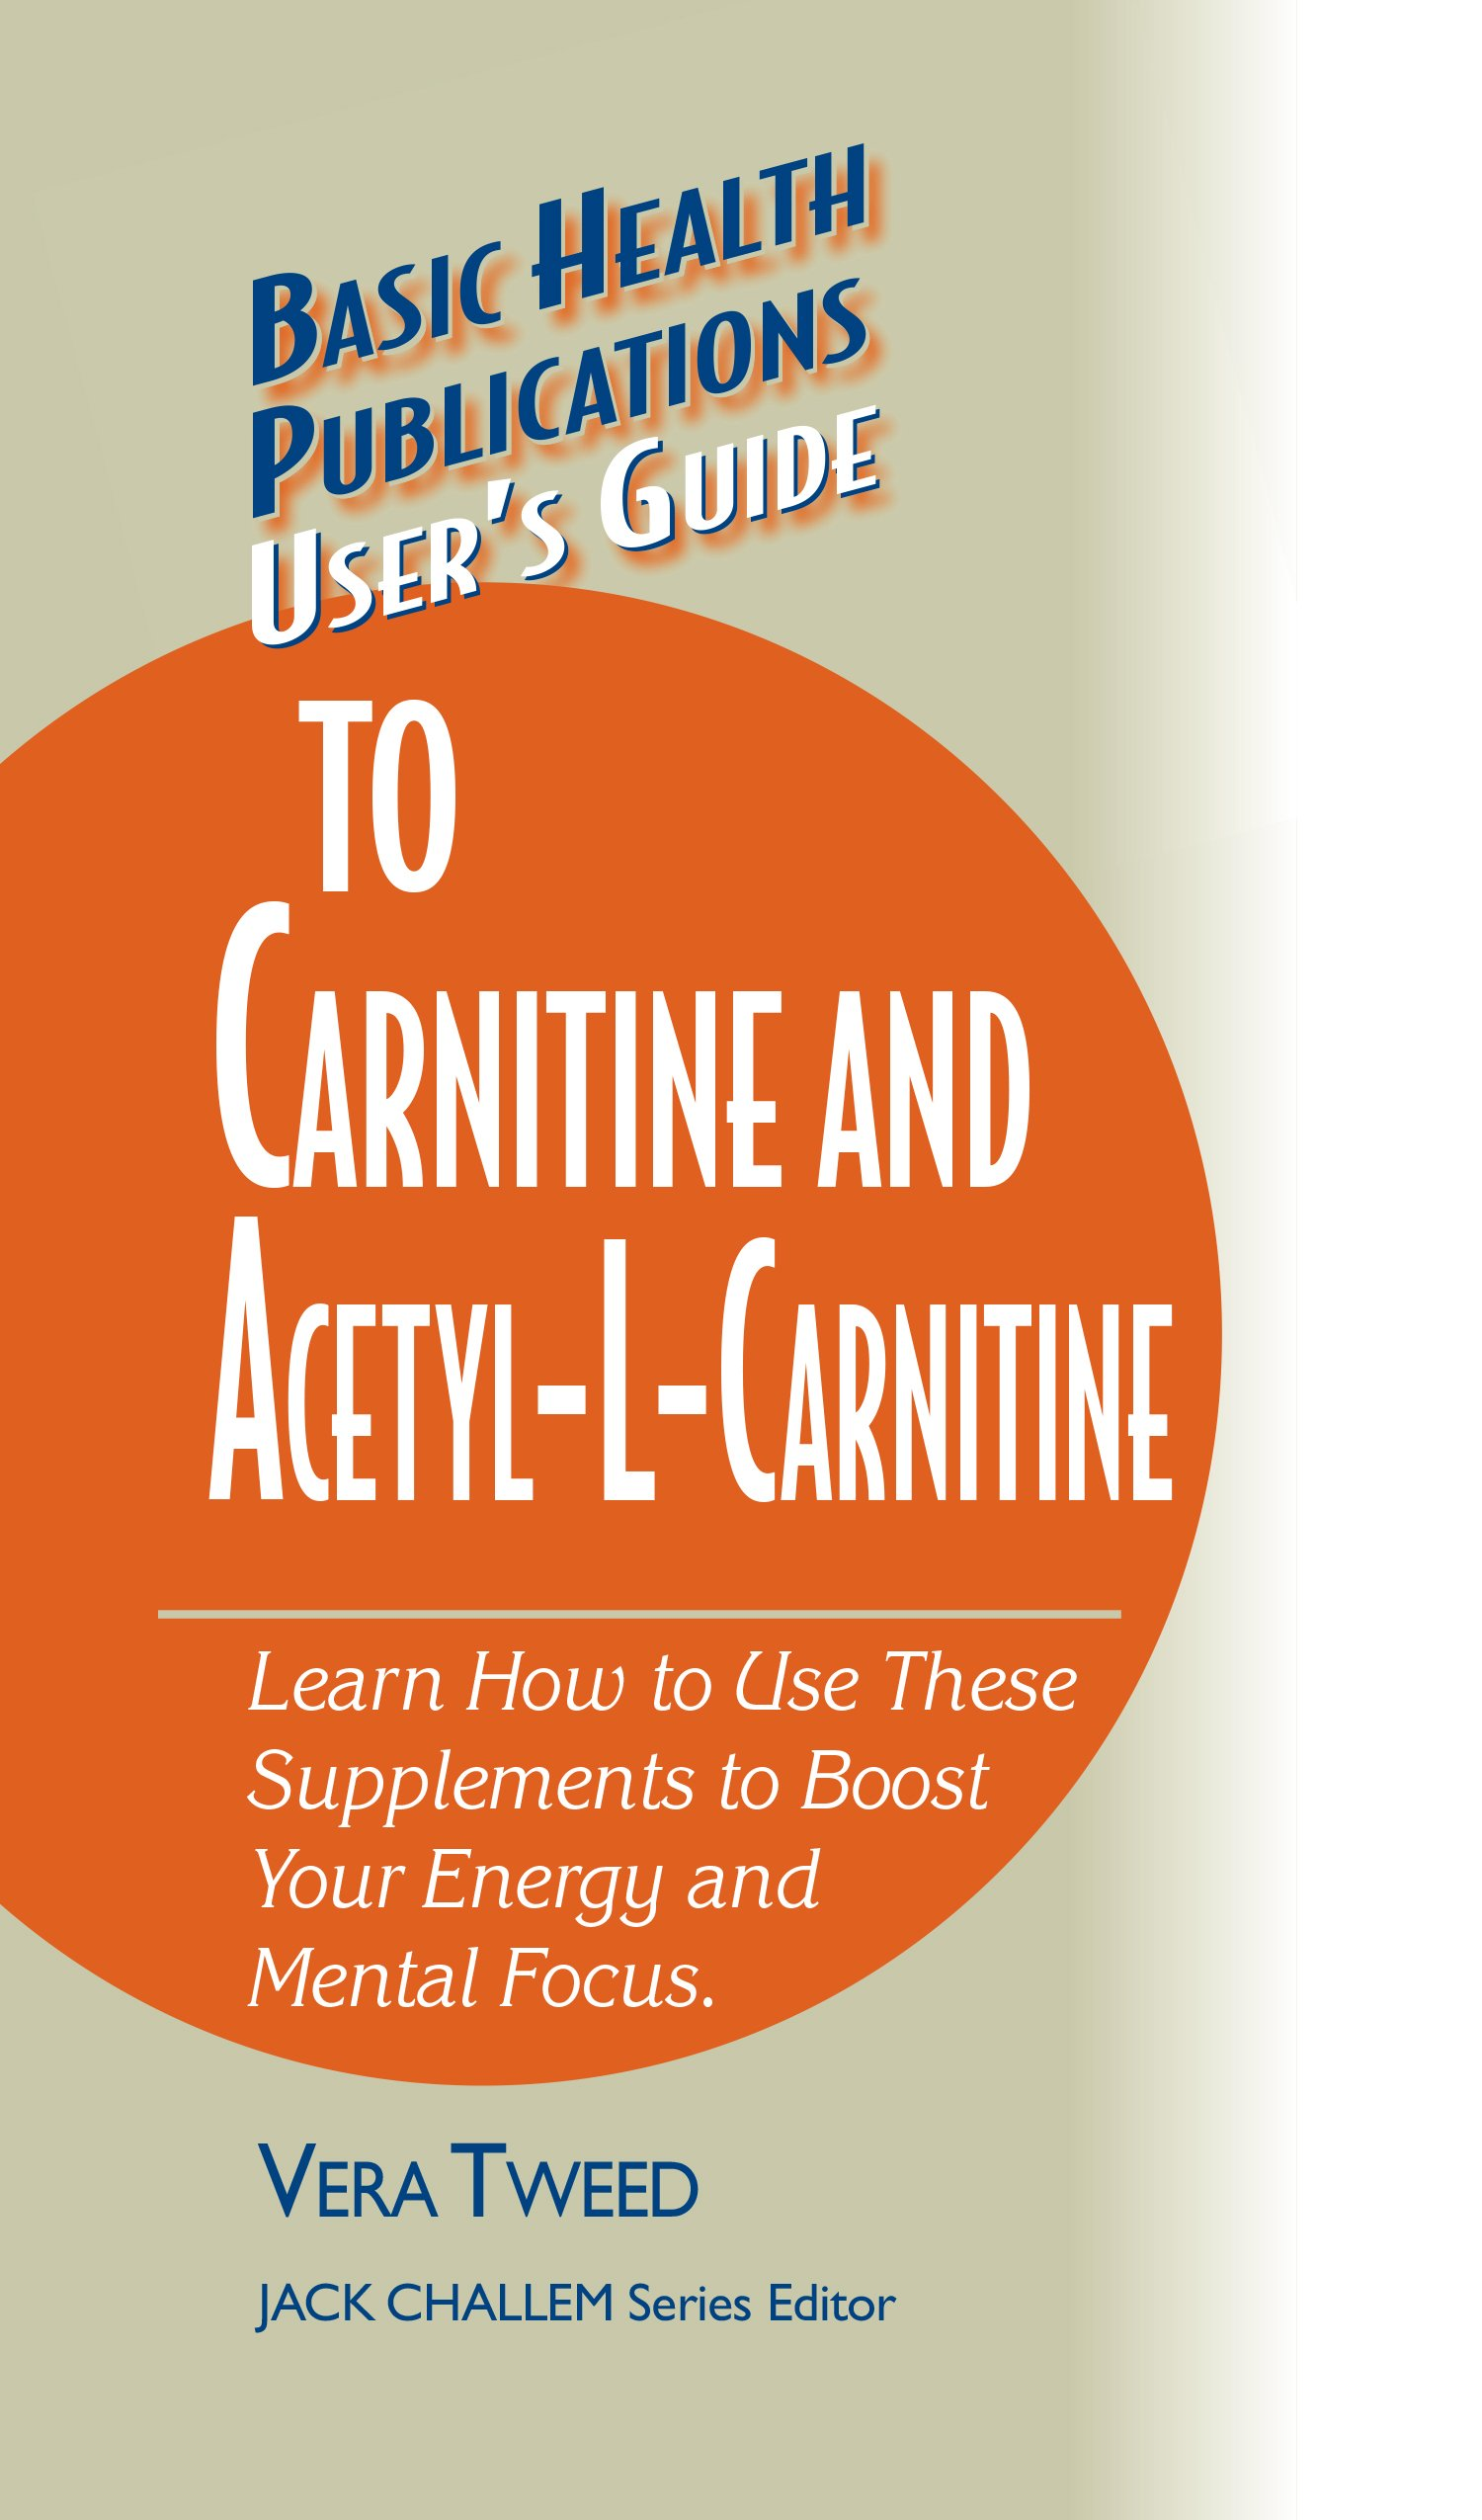 User's Guide To Carnitine And Acetyl L Carnitine  Basic Health Publications User's Guide   English Edition